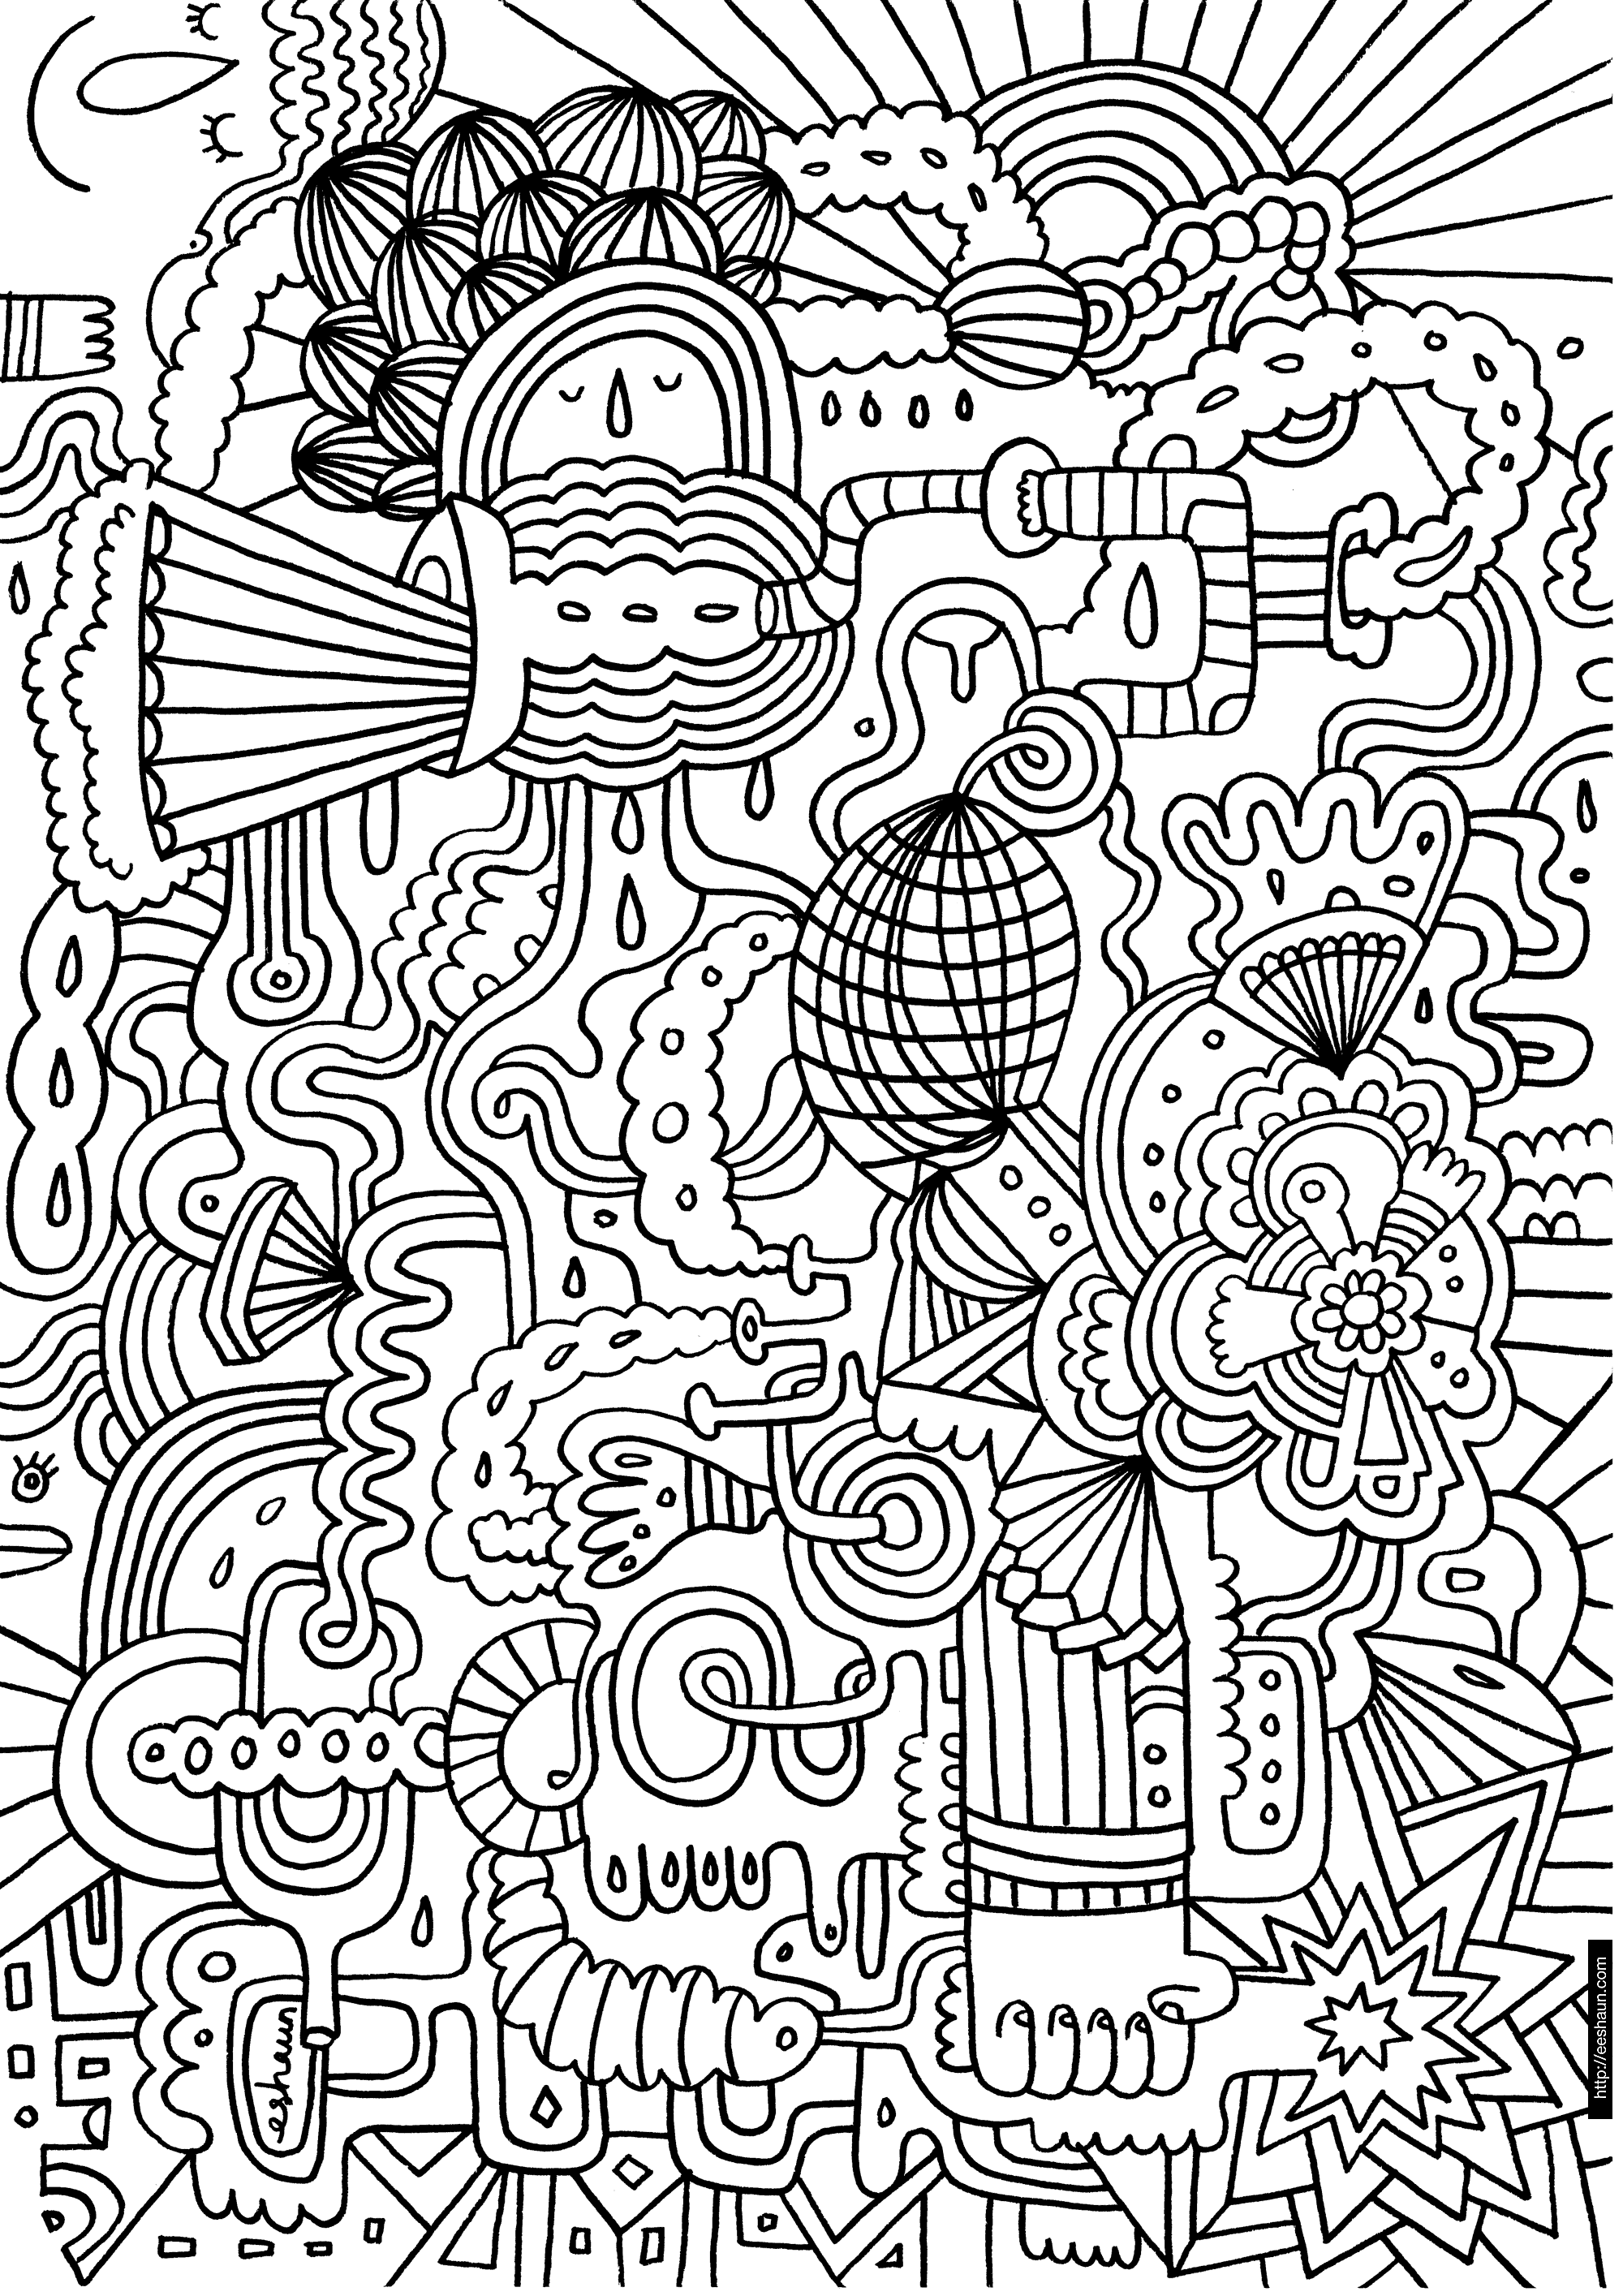 Detailed Coloring Pages For Adults | In Patterns Coloring